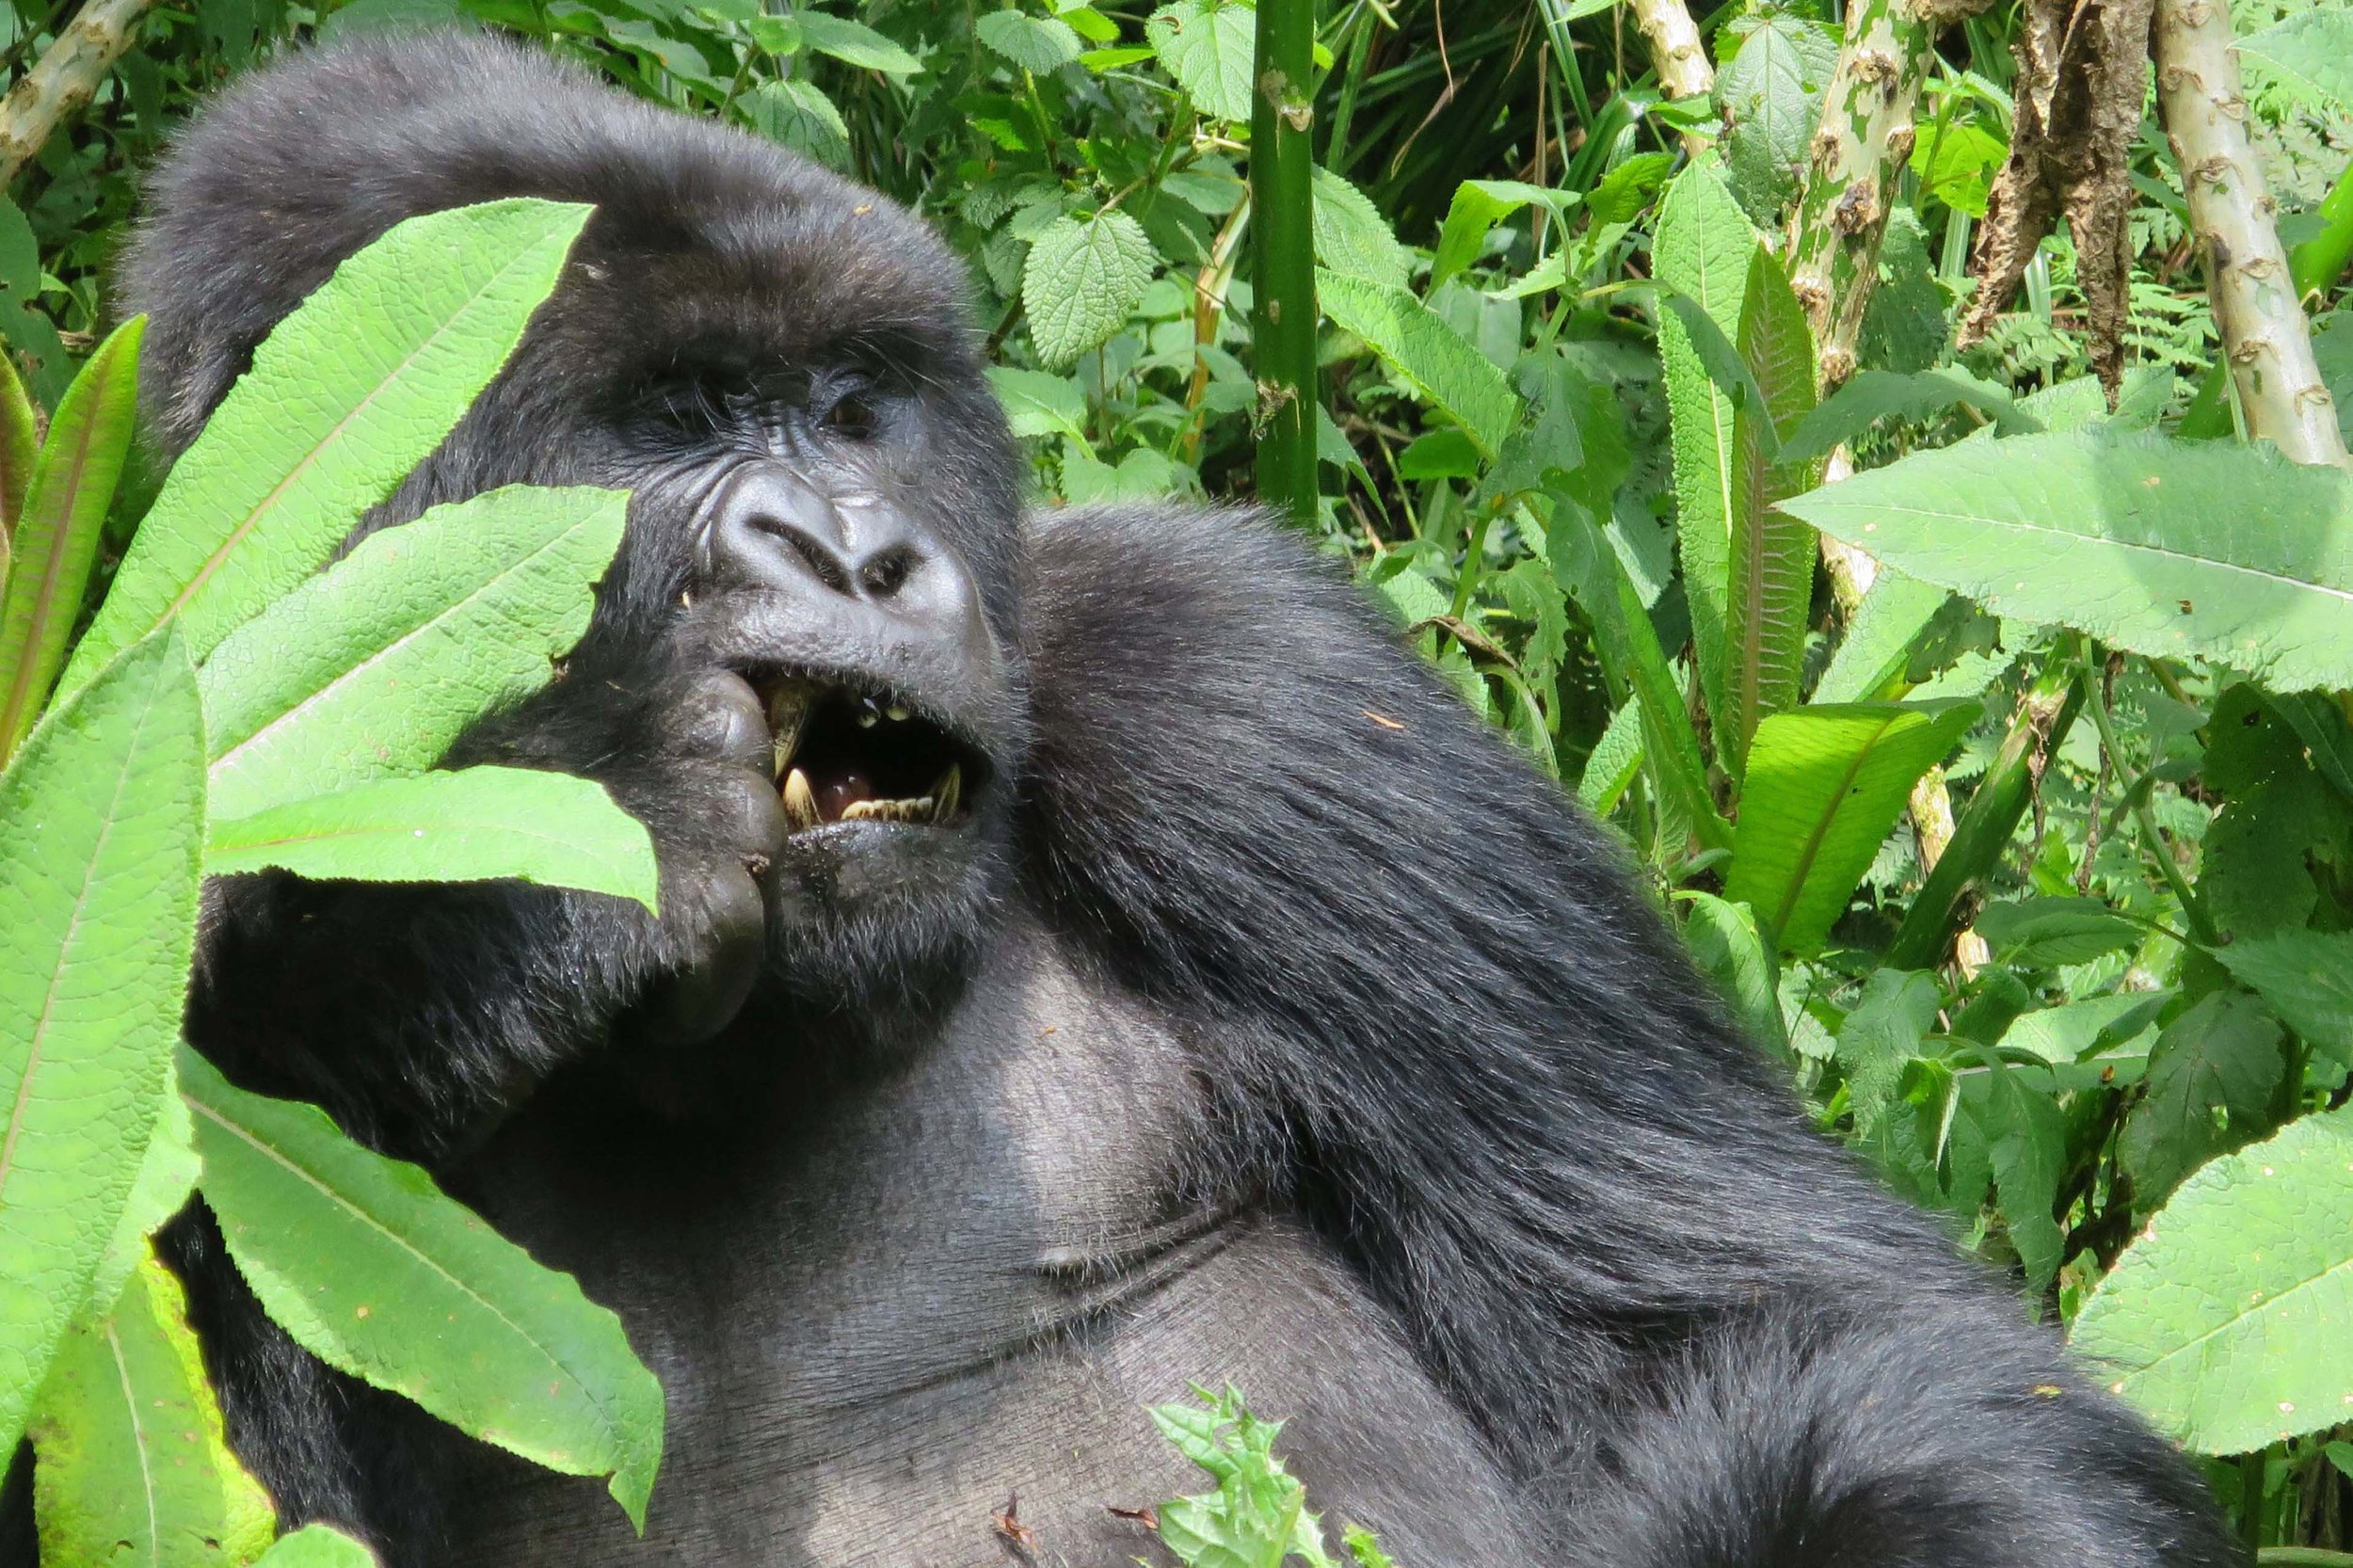 I was mesmerised by the first gorilla I saw in the wild, a female just hanging out, having a snack © Sarah Reid